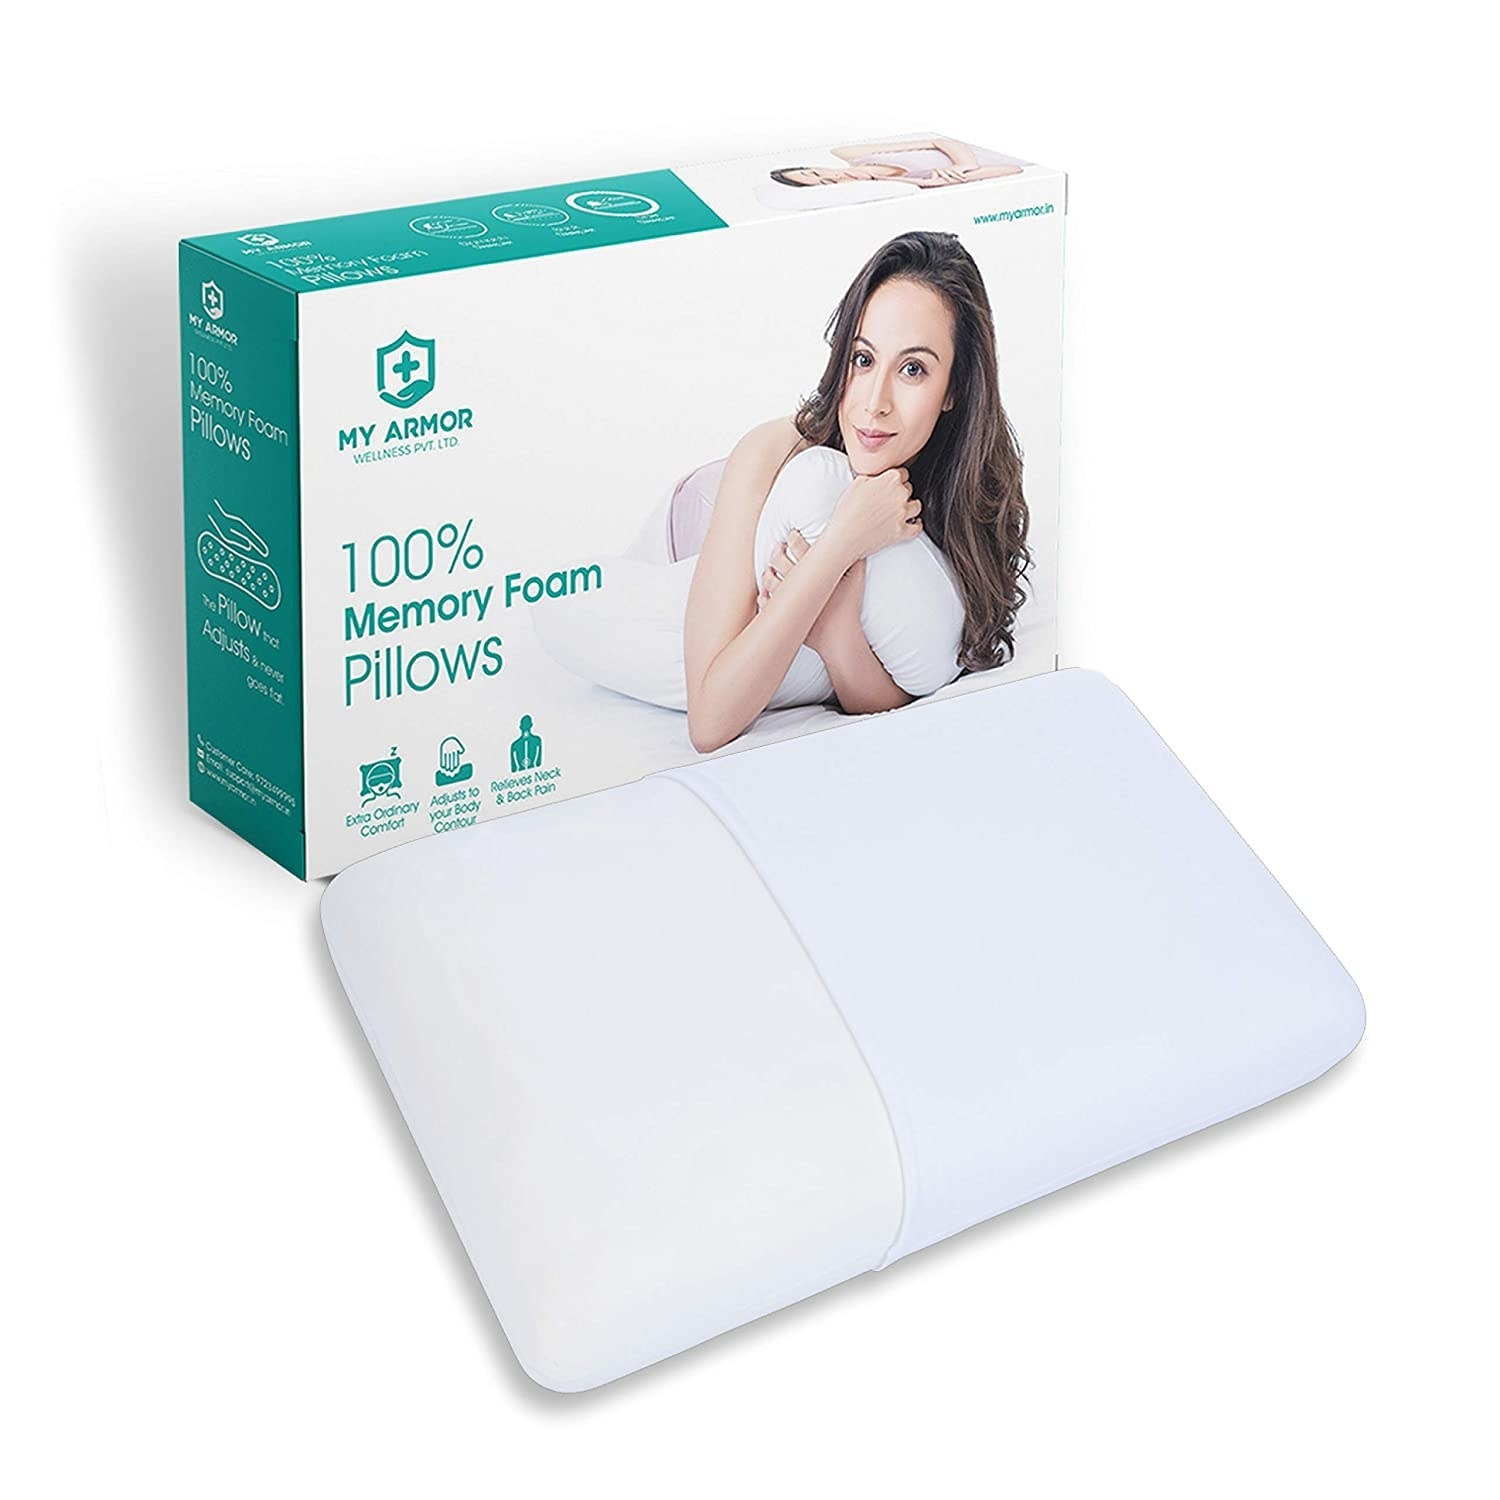 A memory foam pillow with the packaging